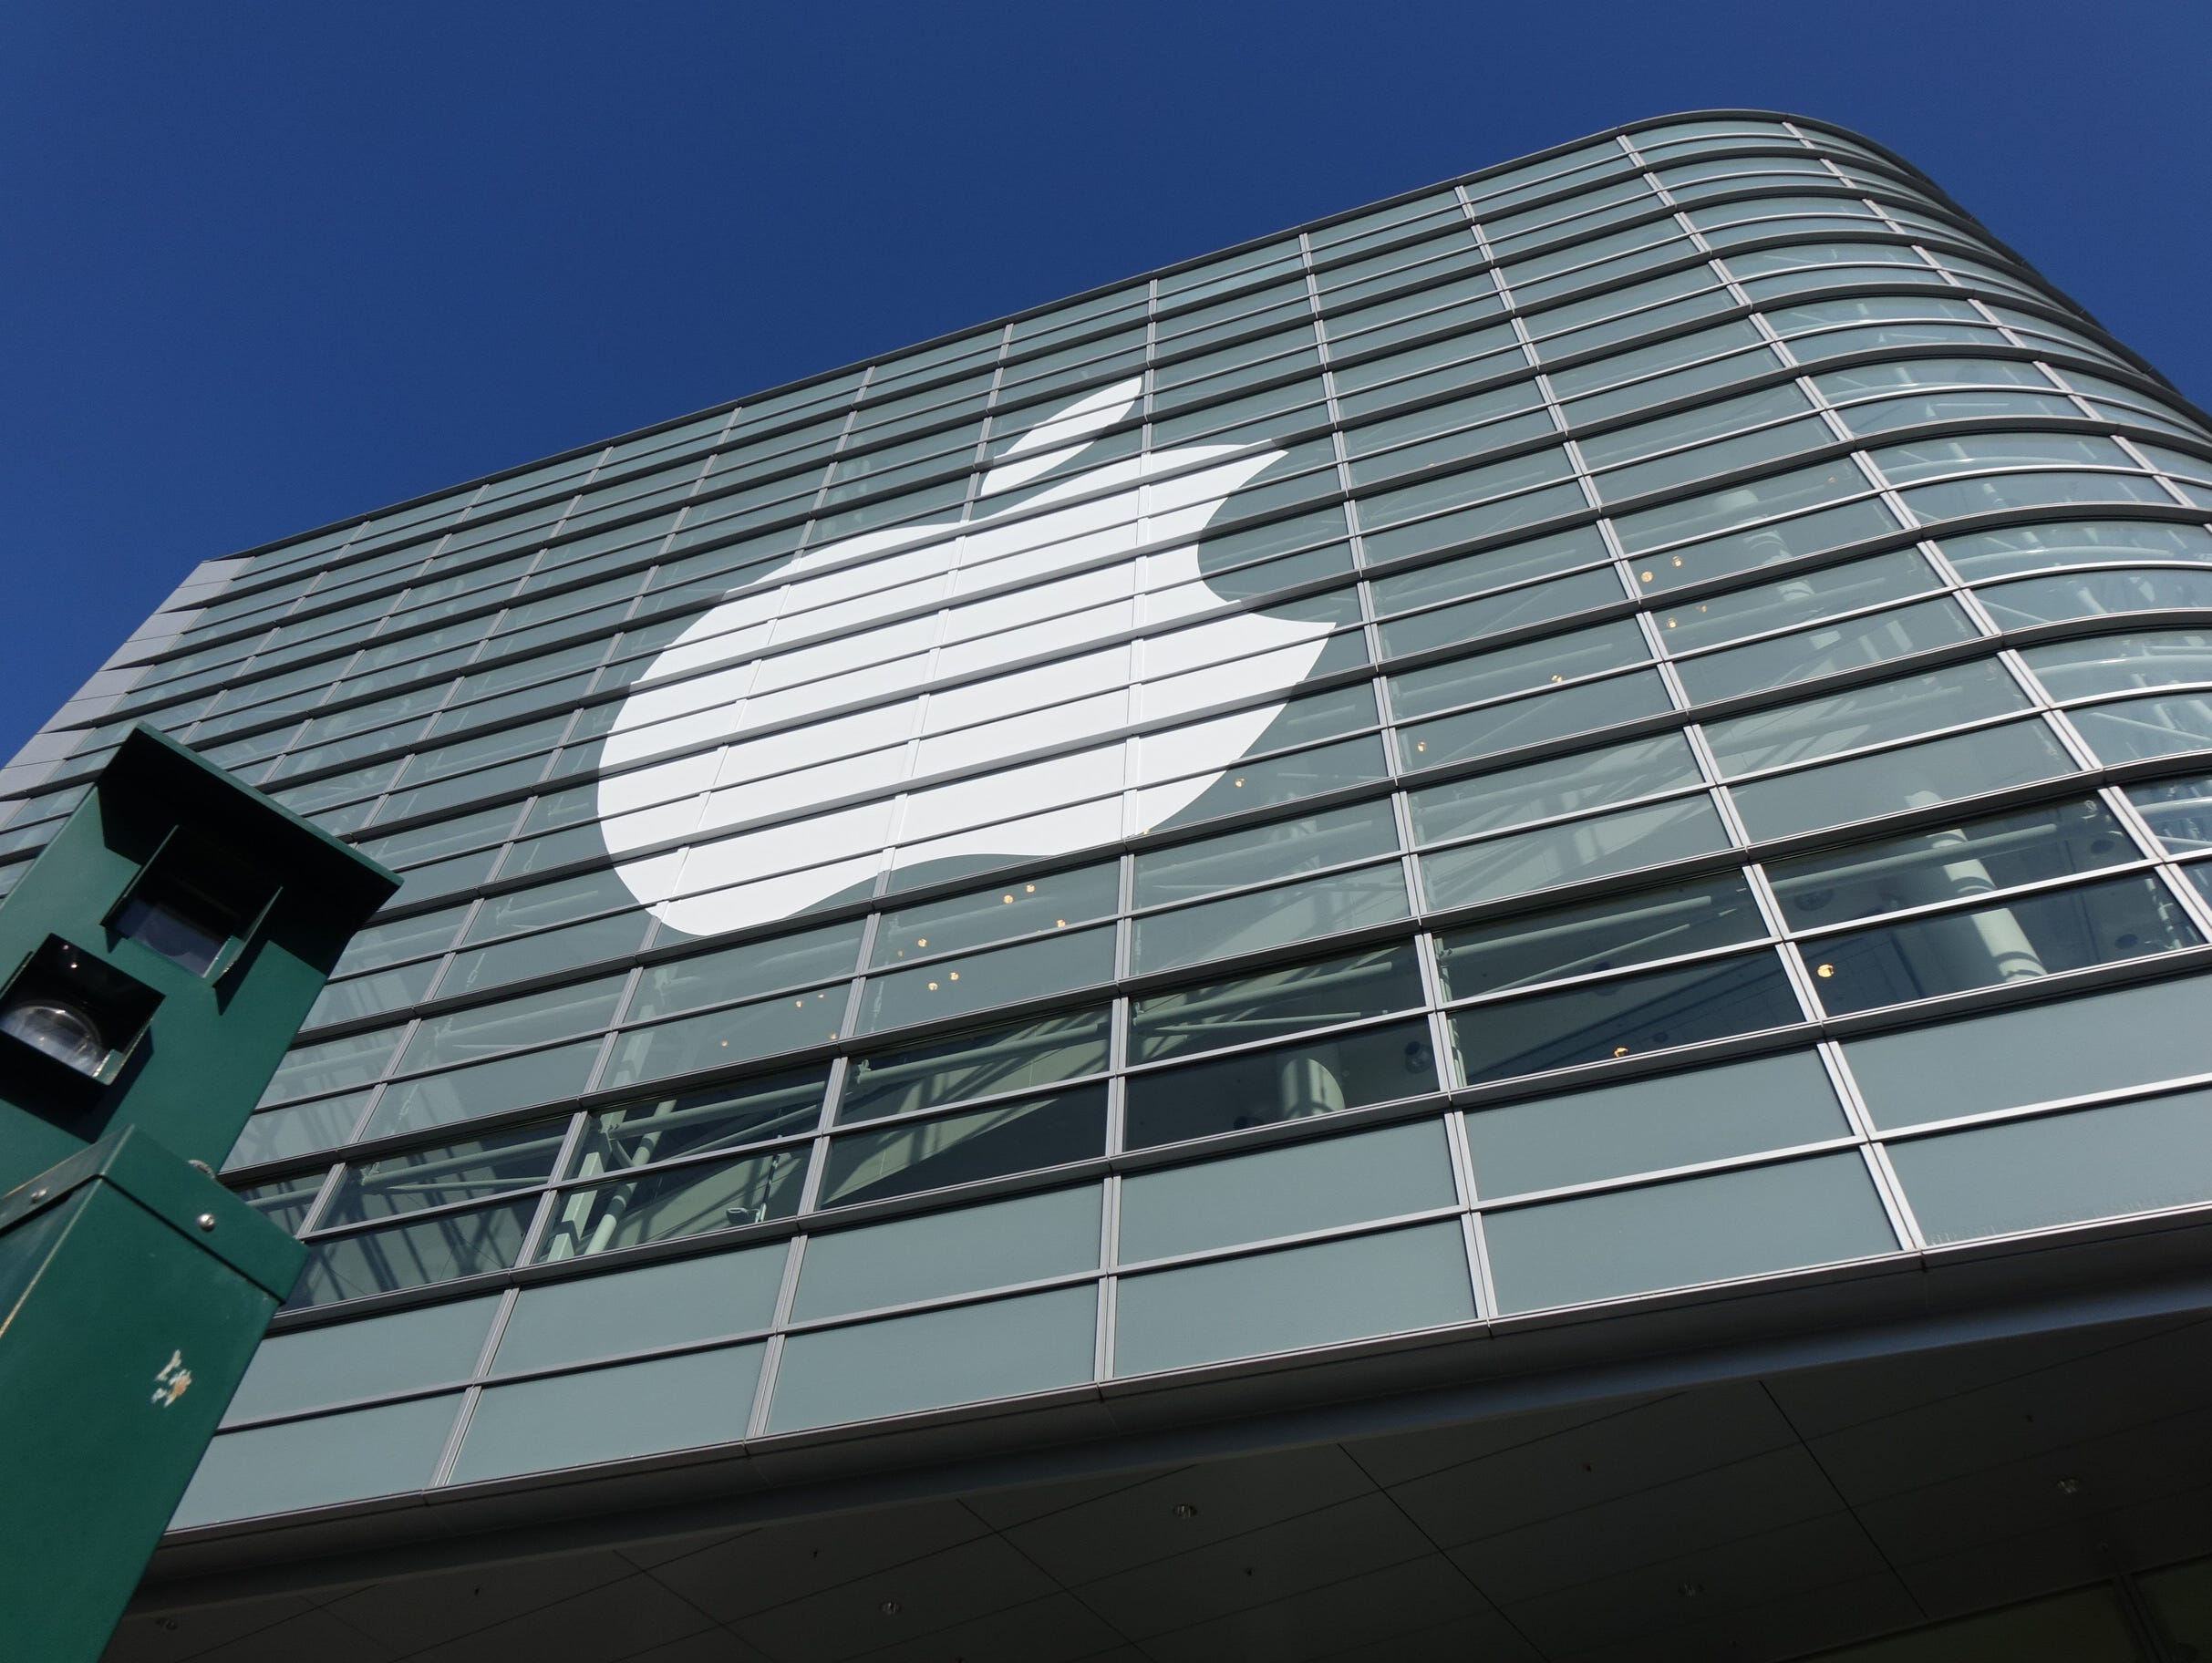 Apple's Worldwide Developers Conference opening today in San Francisco